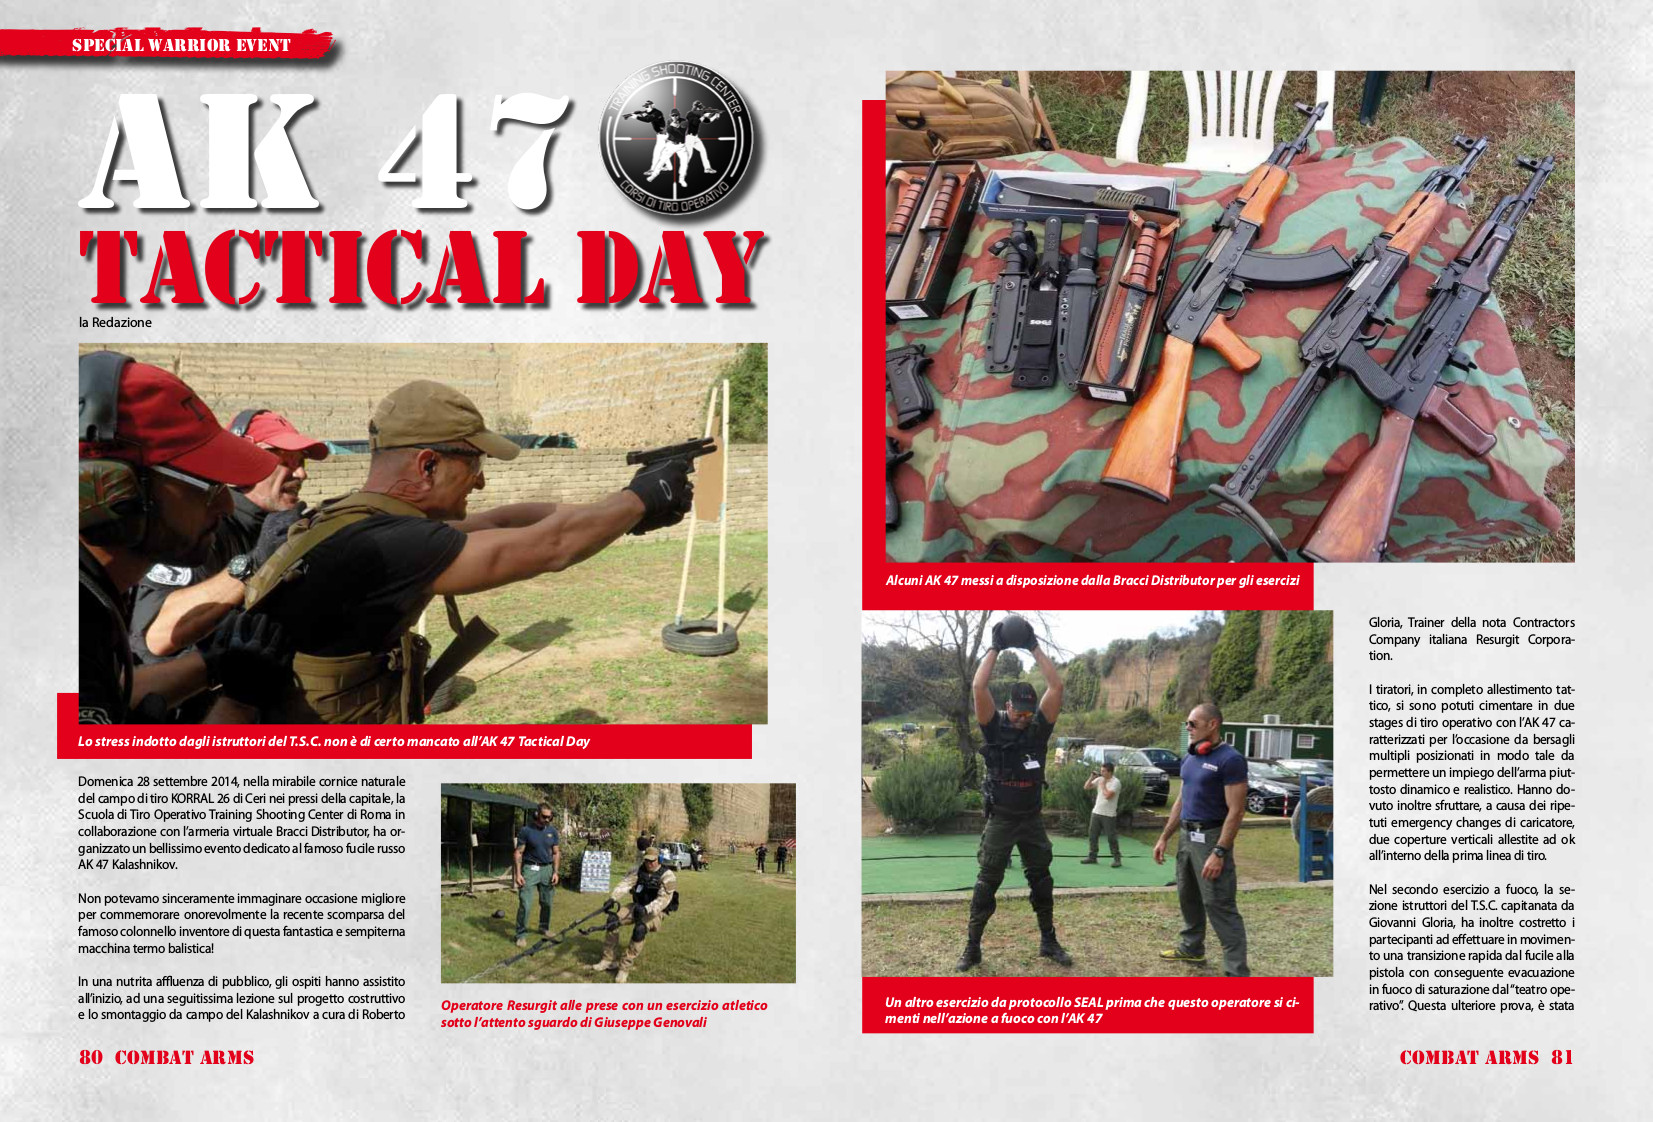 AK 47 TACTICAL DAY 2014